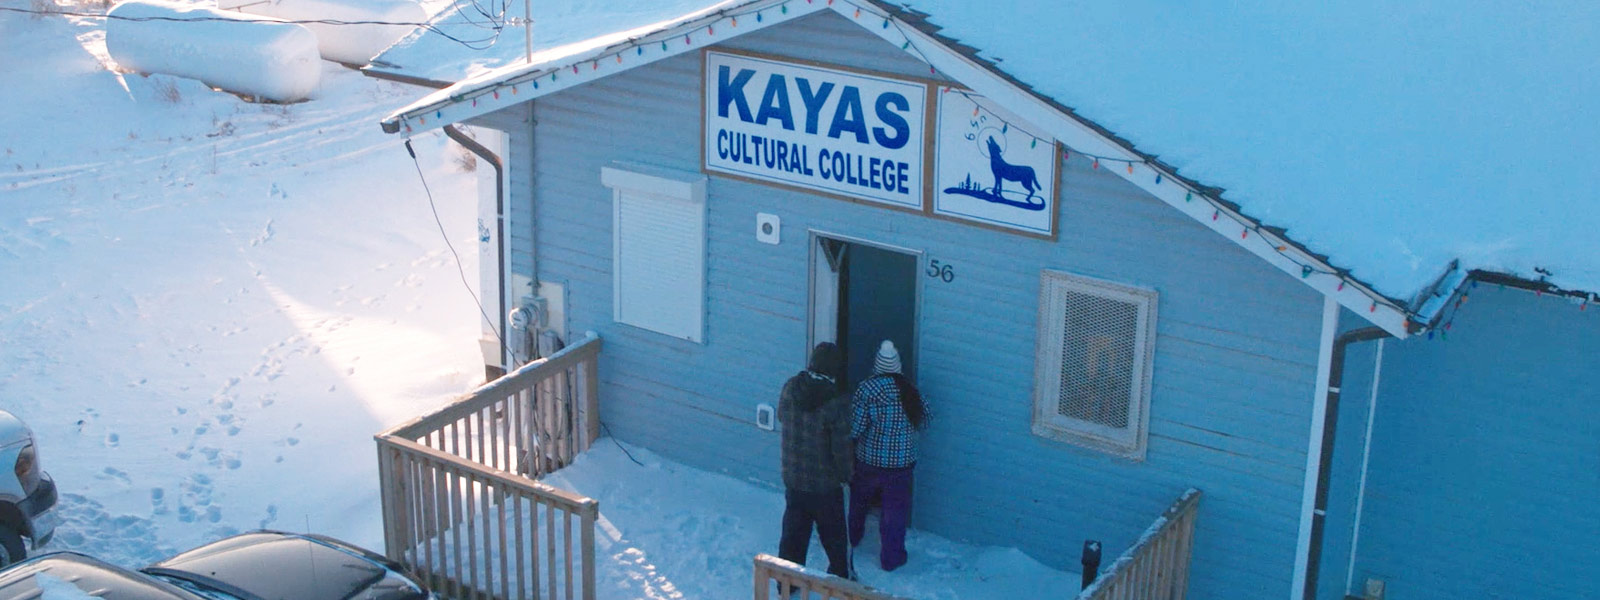 The outside of a building at Kayas Cultural College on a snowy day, and two students are walking inside.